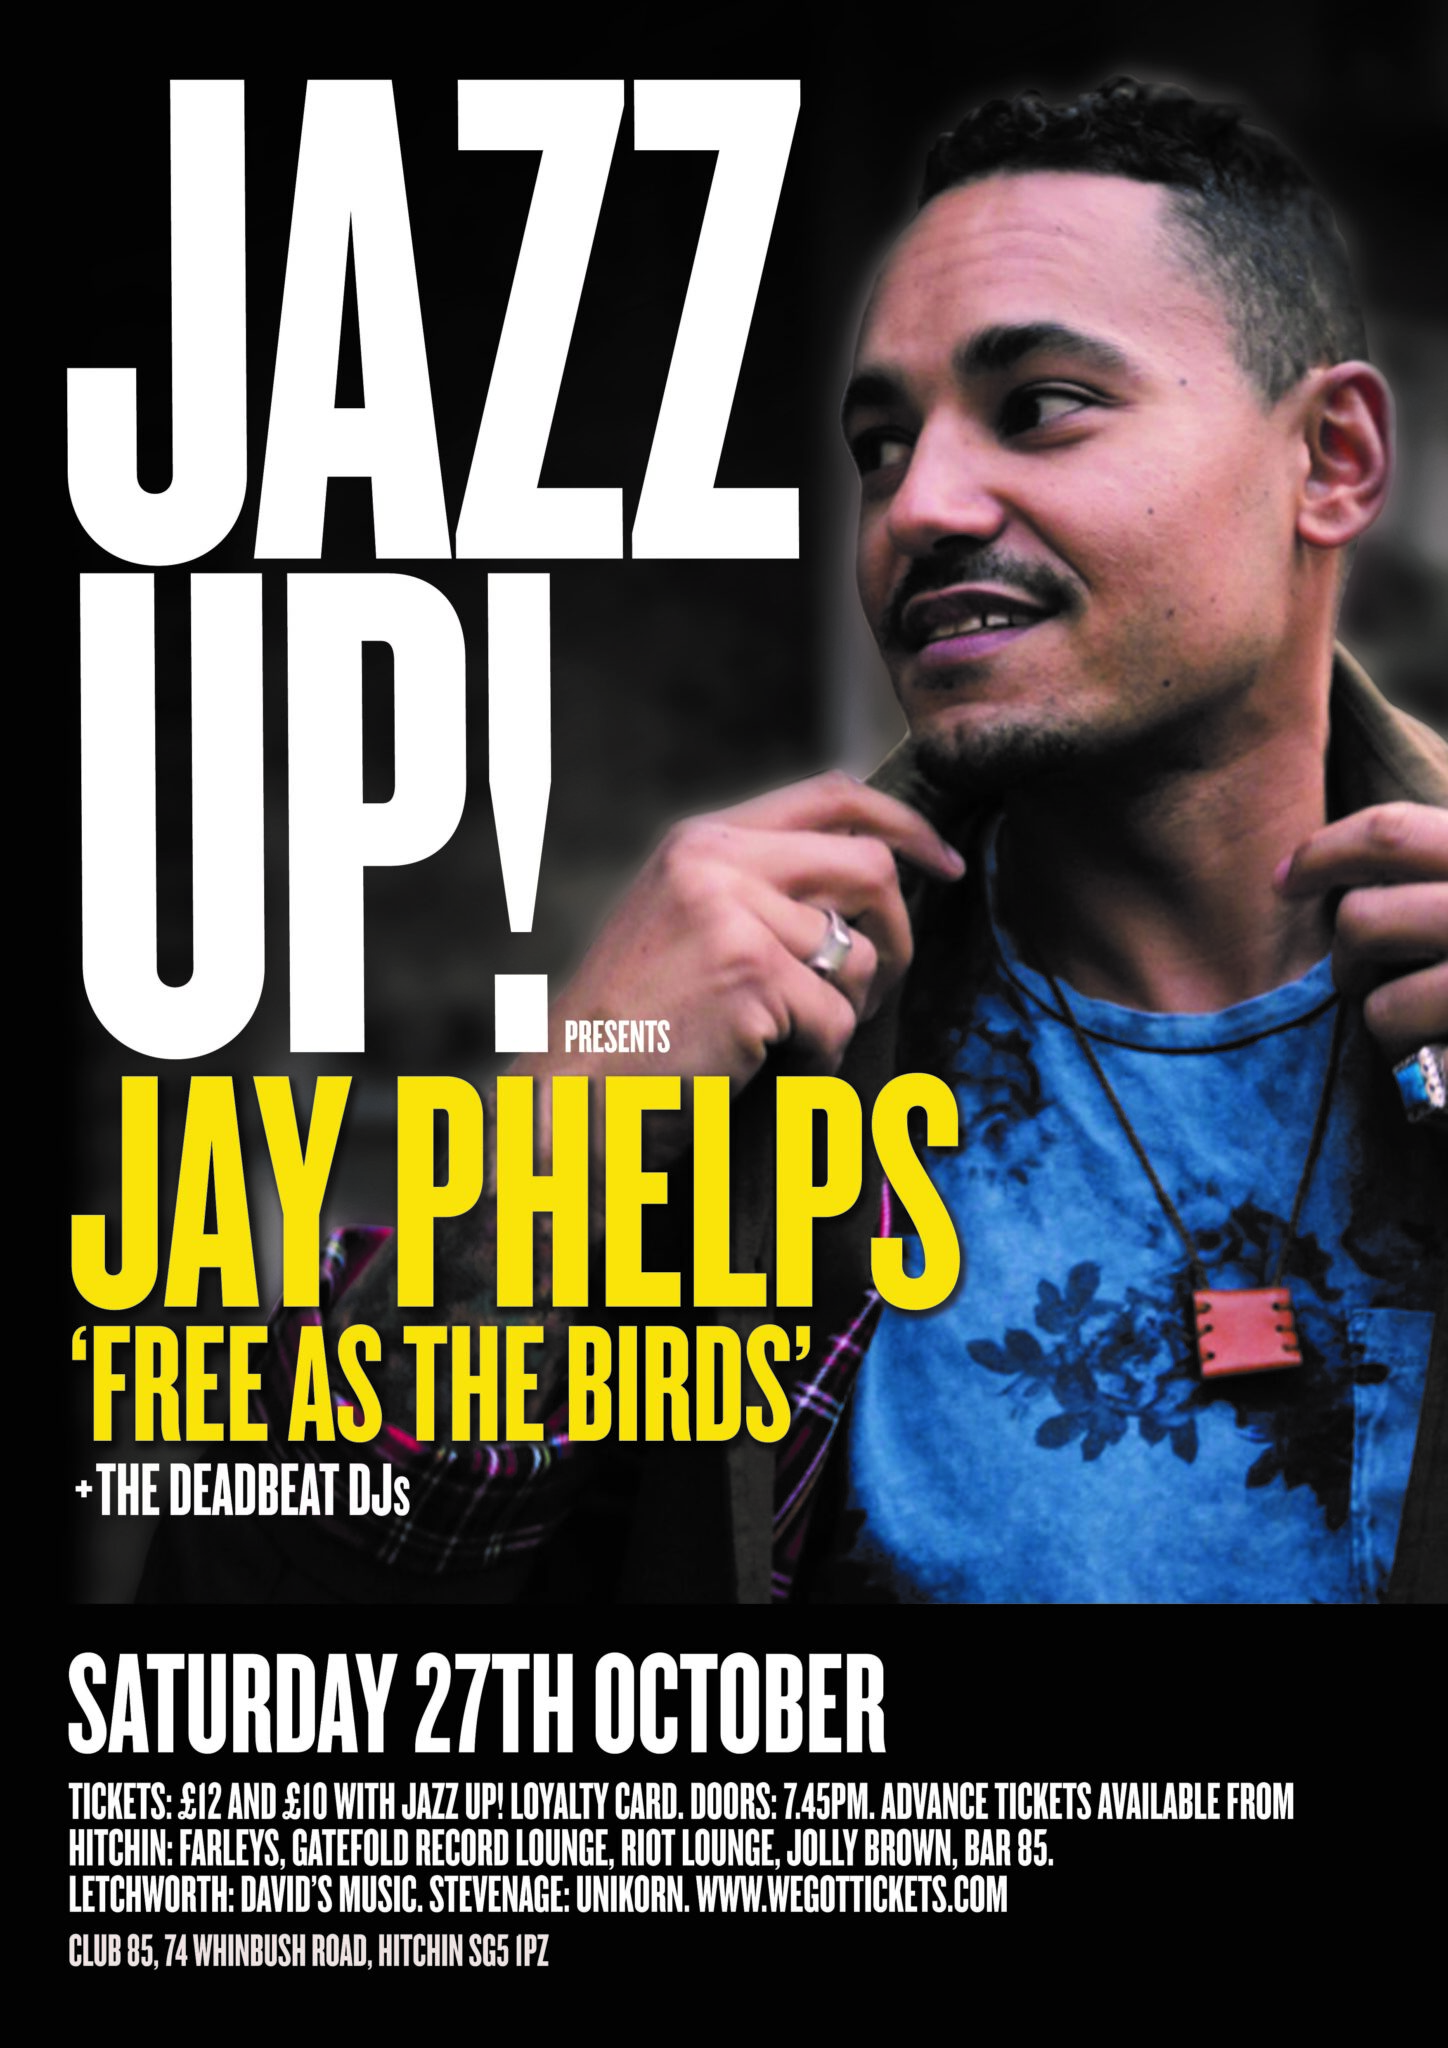 JazzUp - Jay Phelps Free as the Birds